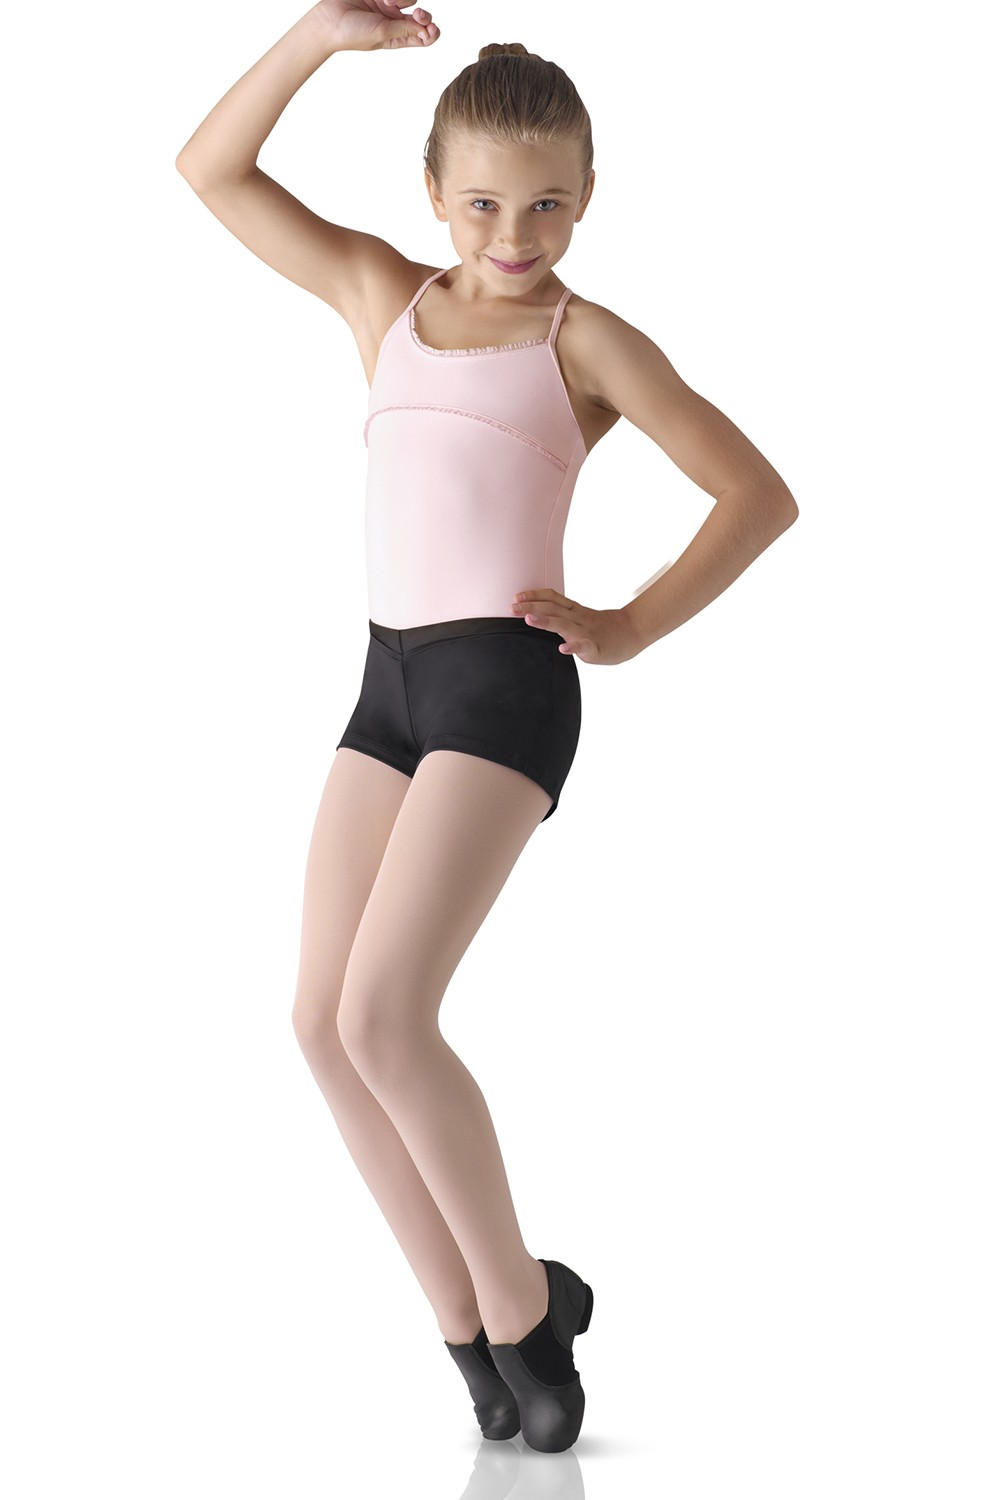 V-front Boy Cut Shorts Children's Dance Shorts